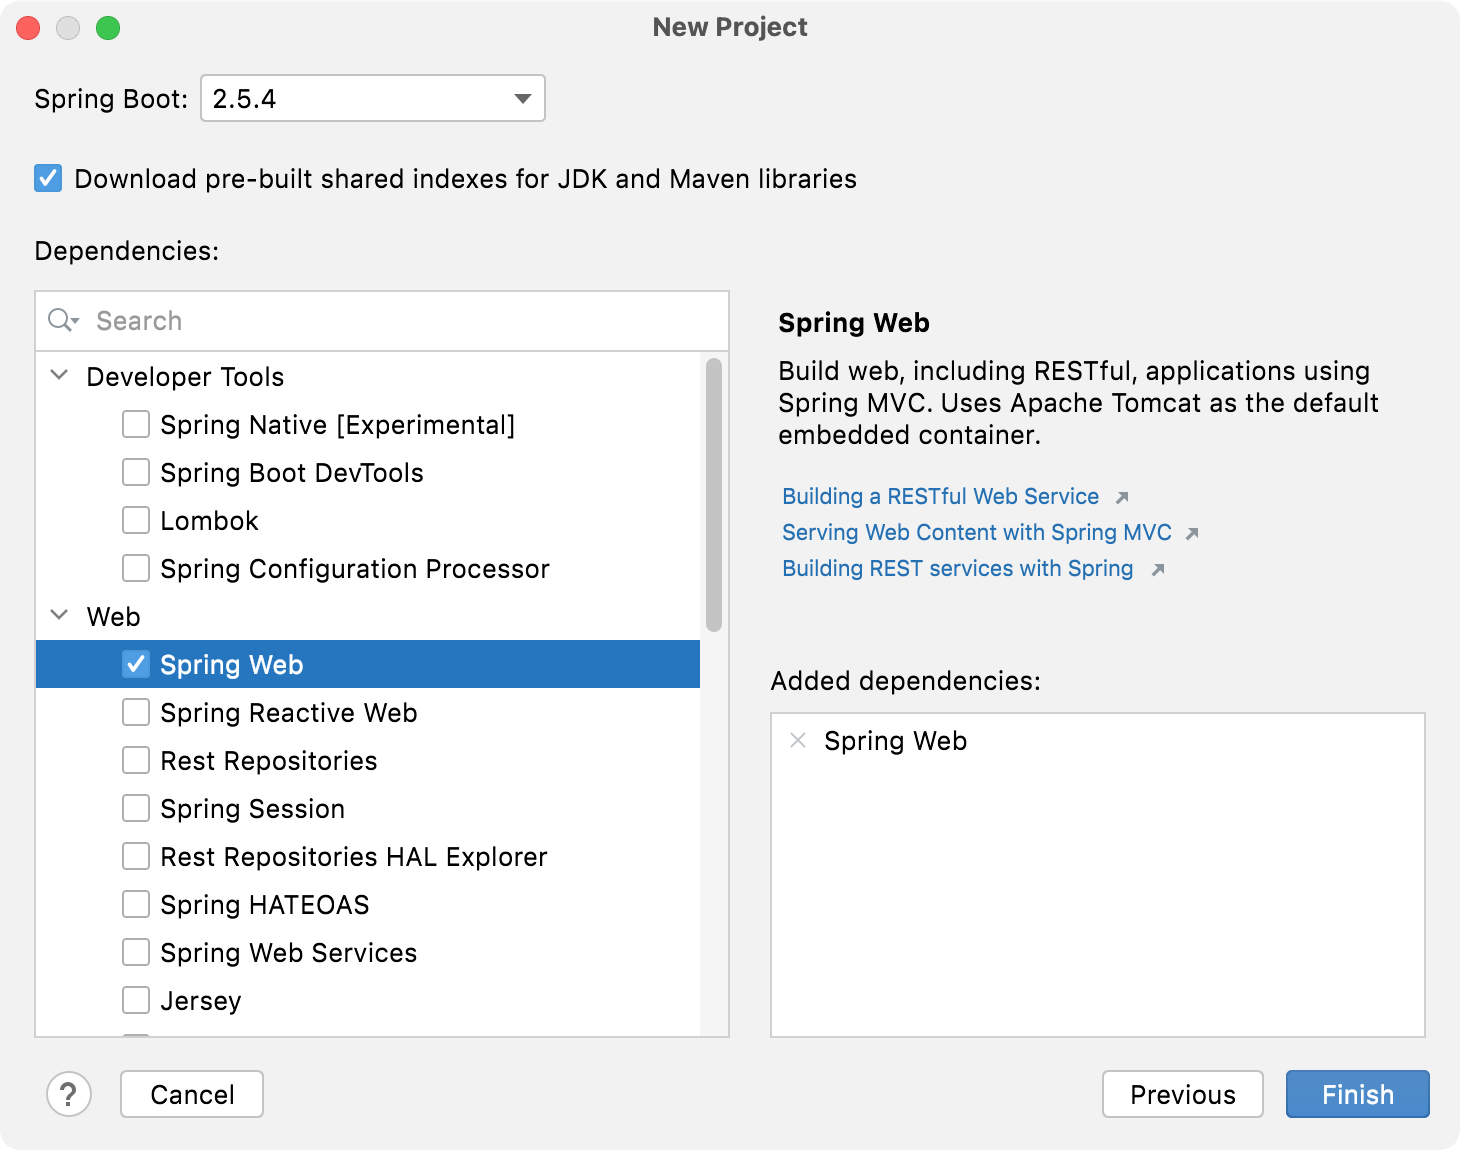 Spring Dependencies in the New Project wizard